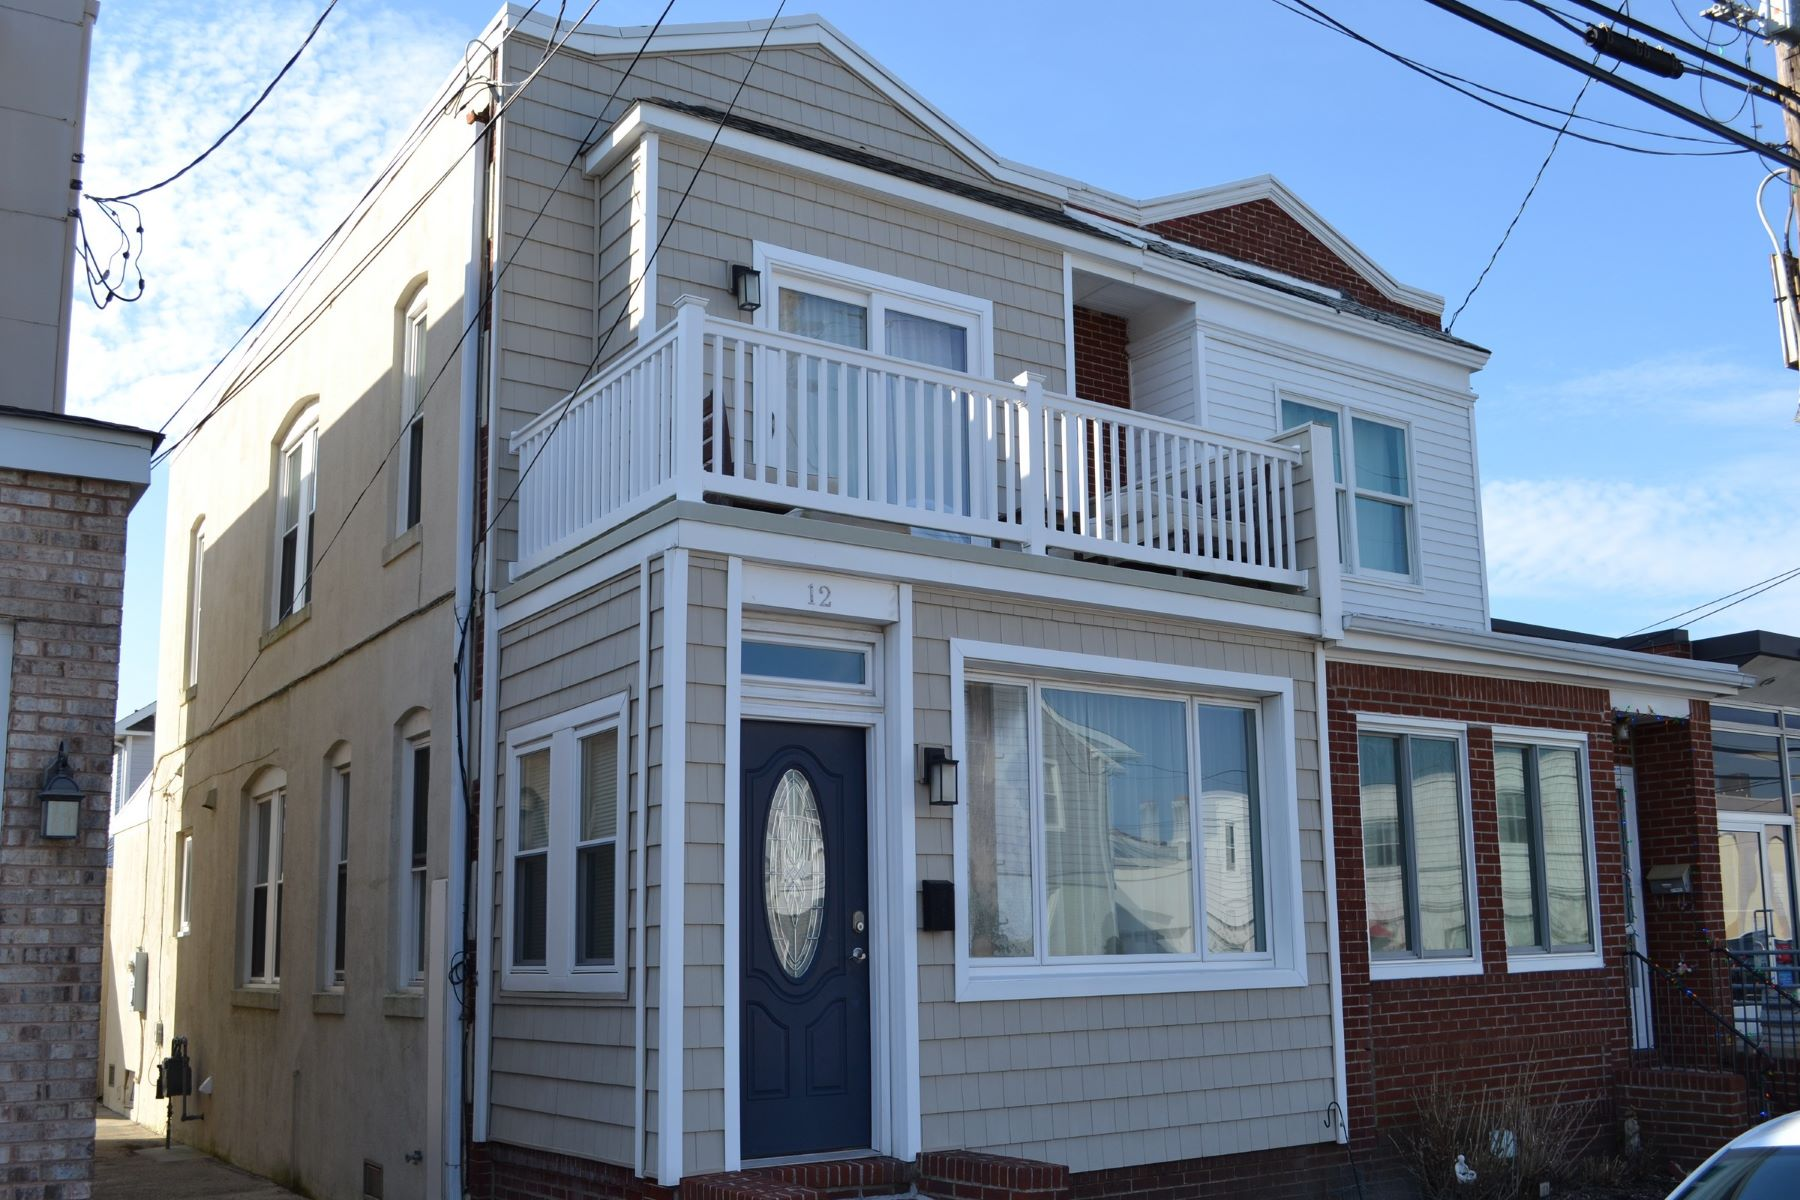 Townhouse for Rent at 12 S Franklin Ave 12 S Franklin Ave SPLIT SEASON, 2ND HALF, Margate, New Jersey 08402 United States